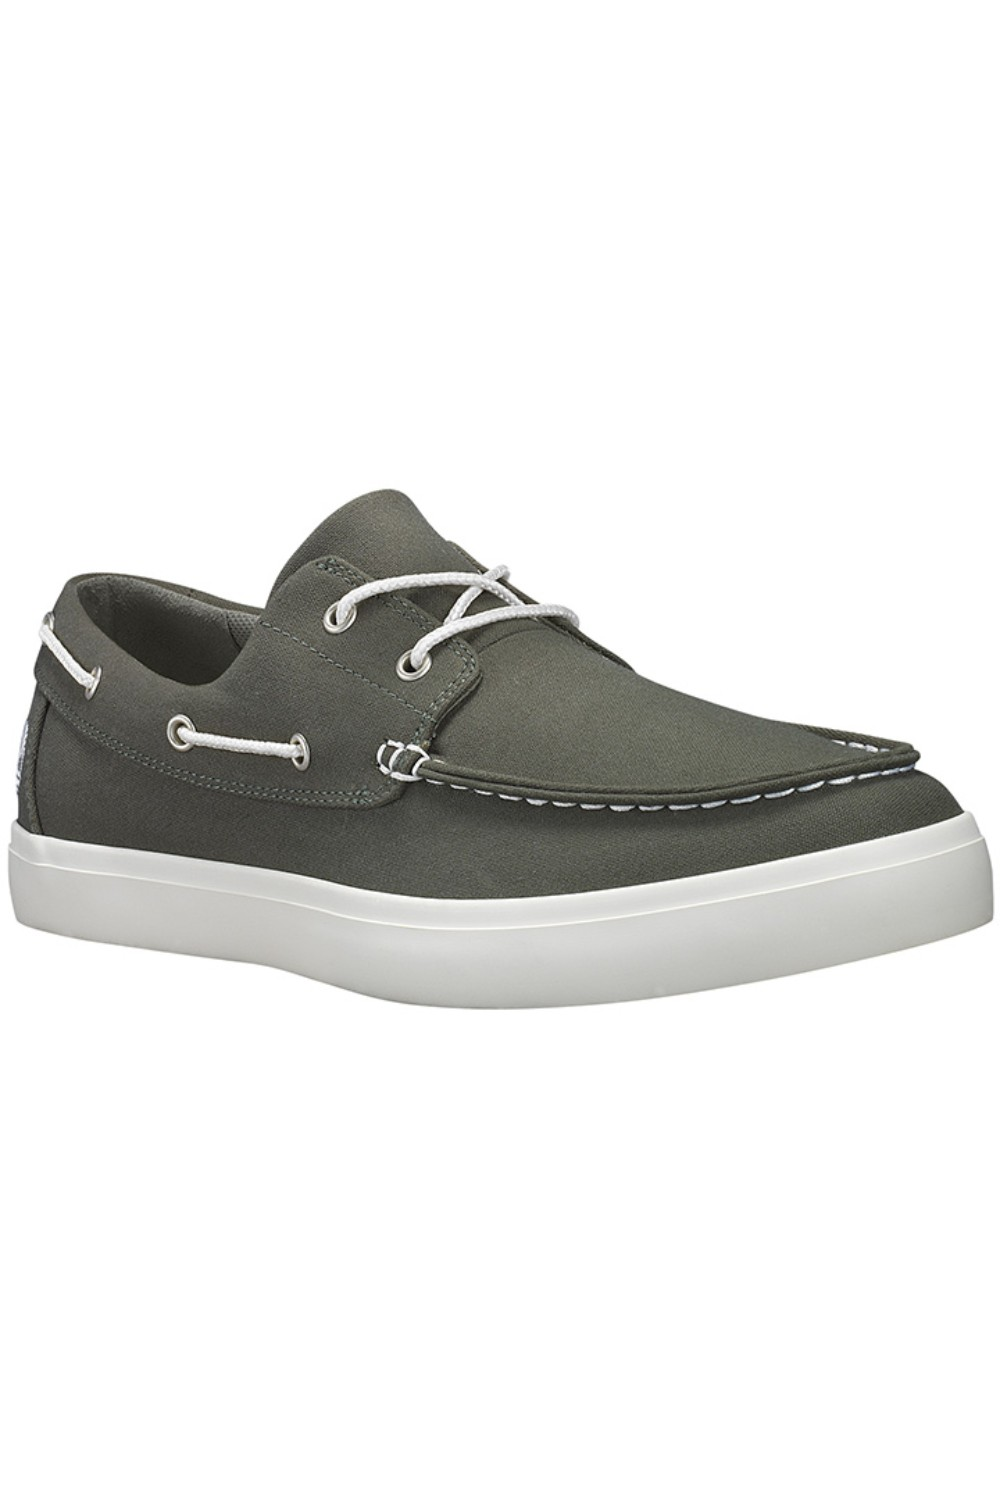 Elevado Collar relajado  TIMBERLAND UNION WHARF 2 EYE BOAT SHOES GRAPE LEAF GREEN | Riva Menswear